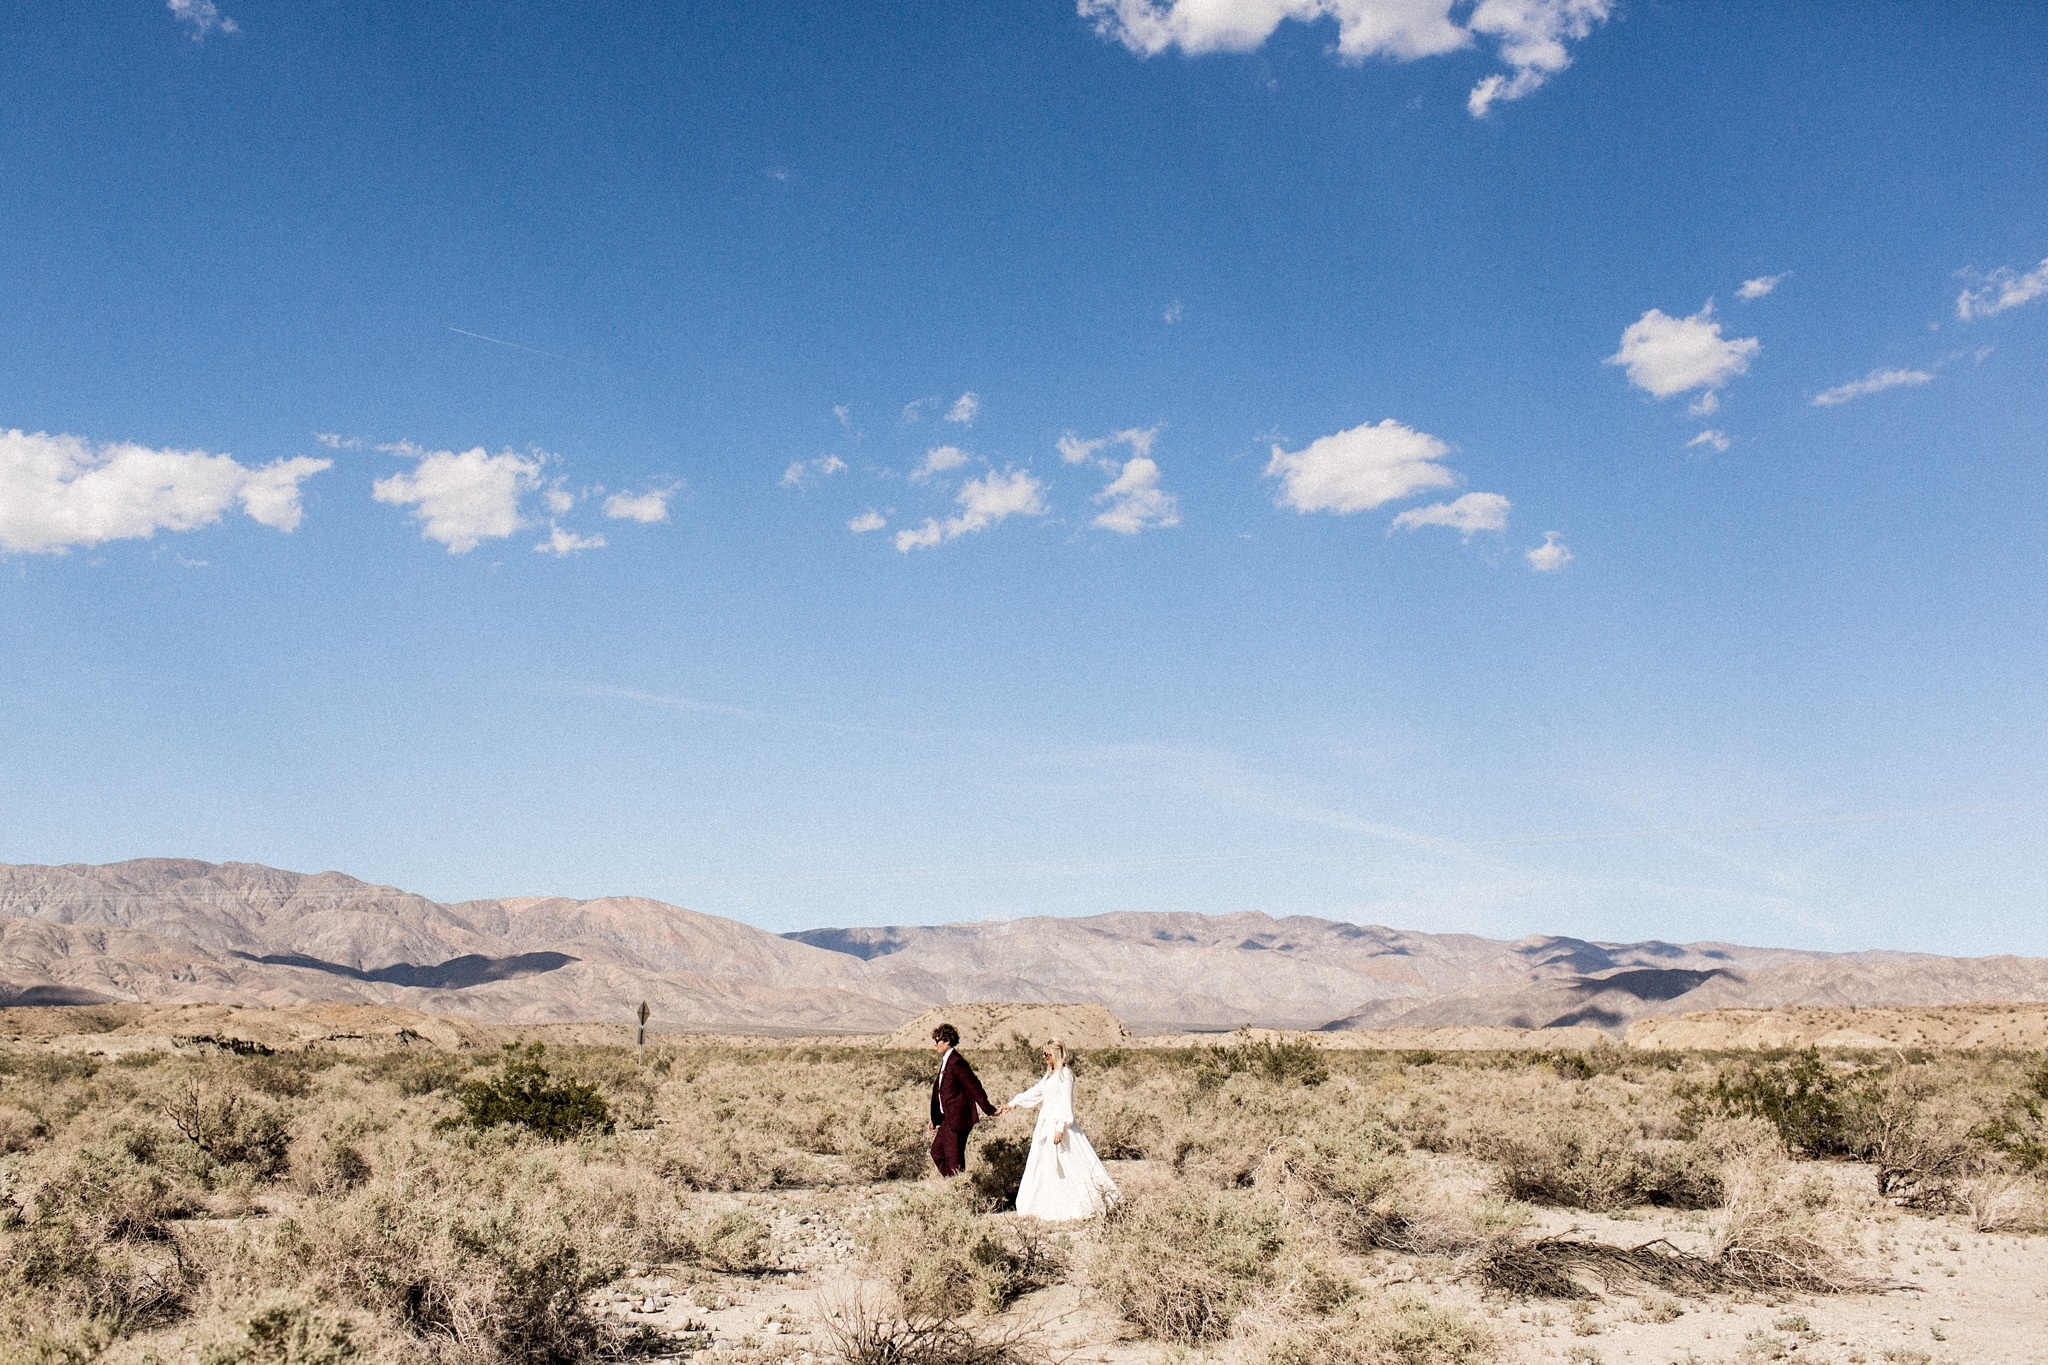 elopement-palm-springs-wedding-photographer-sarah-falugo_0044